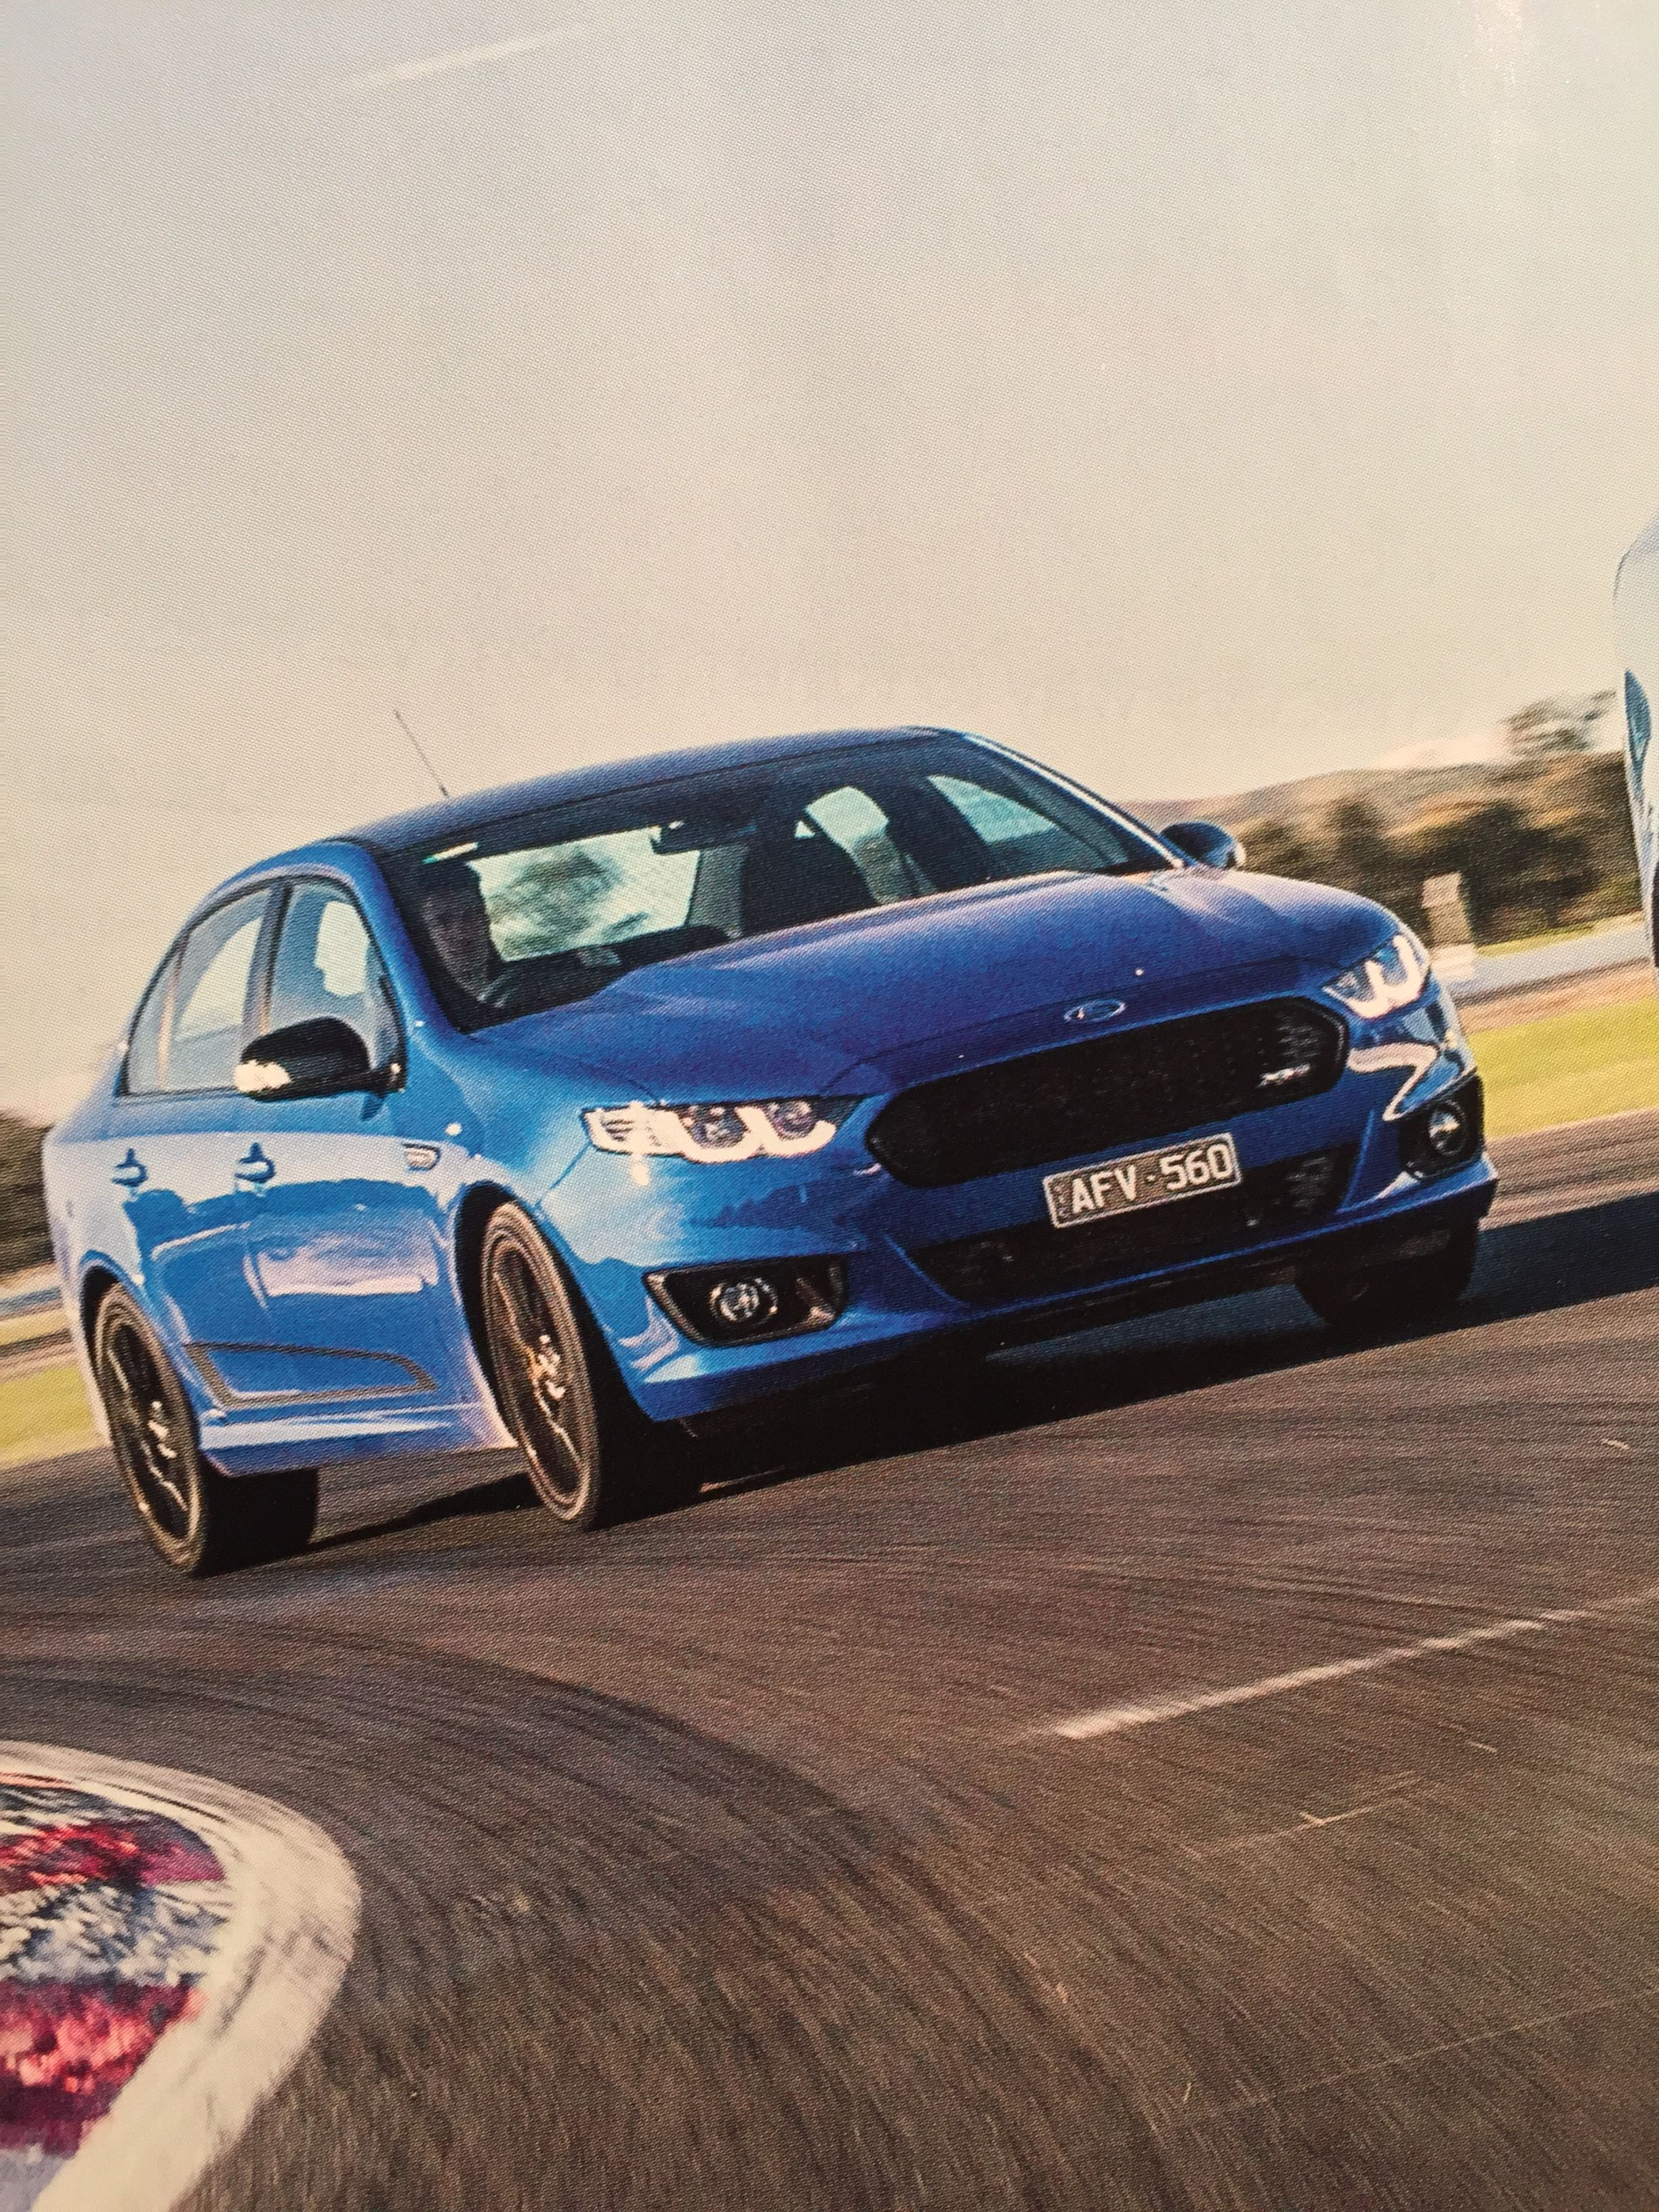 Ford Falcon Xr8 Sprint Aussie Muscle Cars Ford Falcon Xr8 Ford Falcon